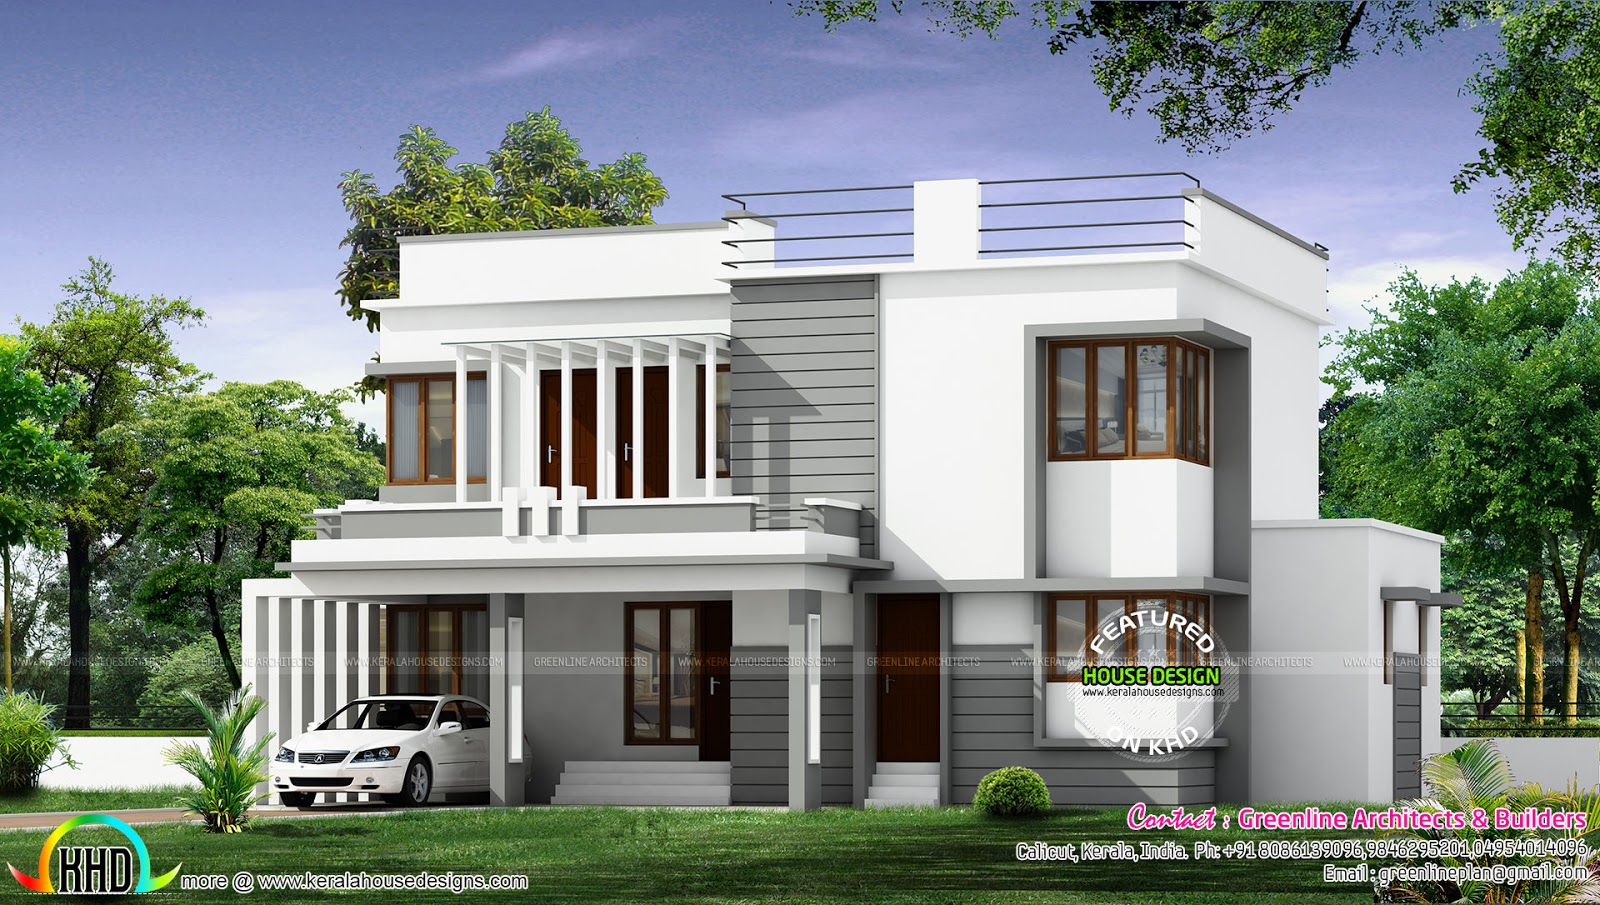 New modern house architecture kerala home design and for New house design photos